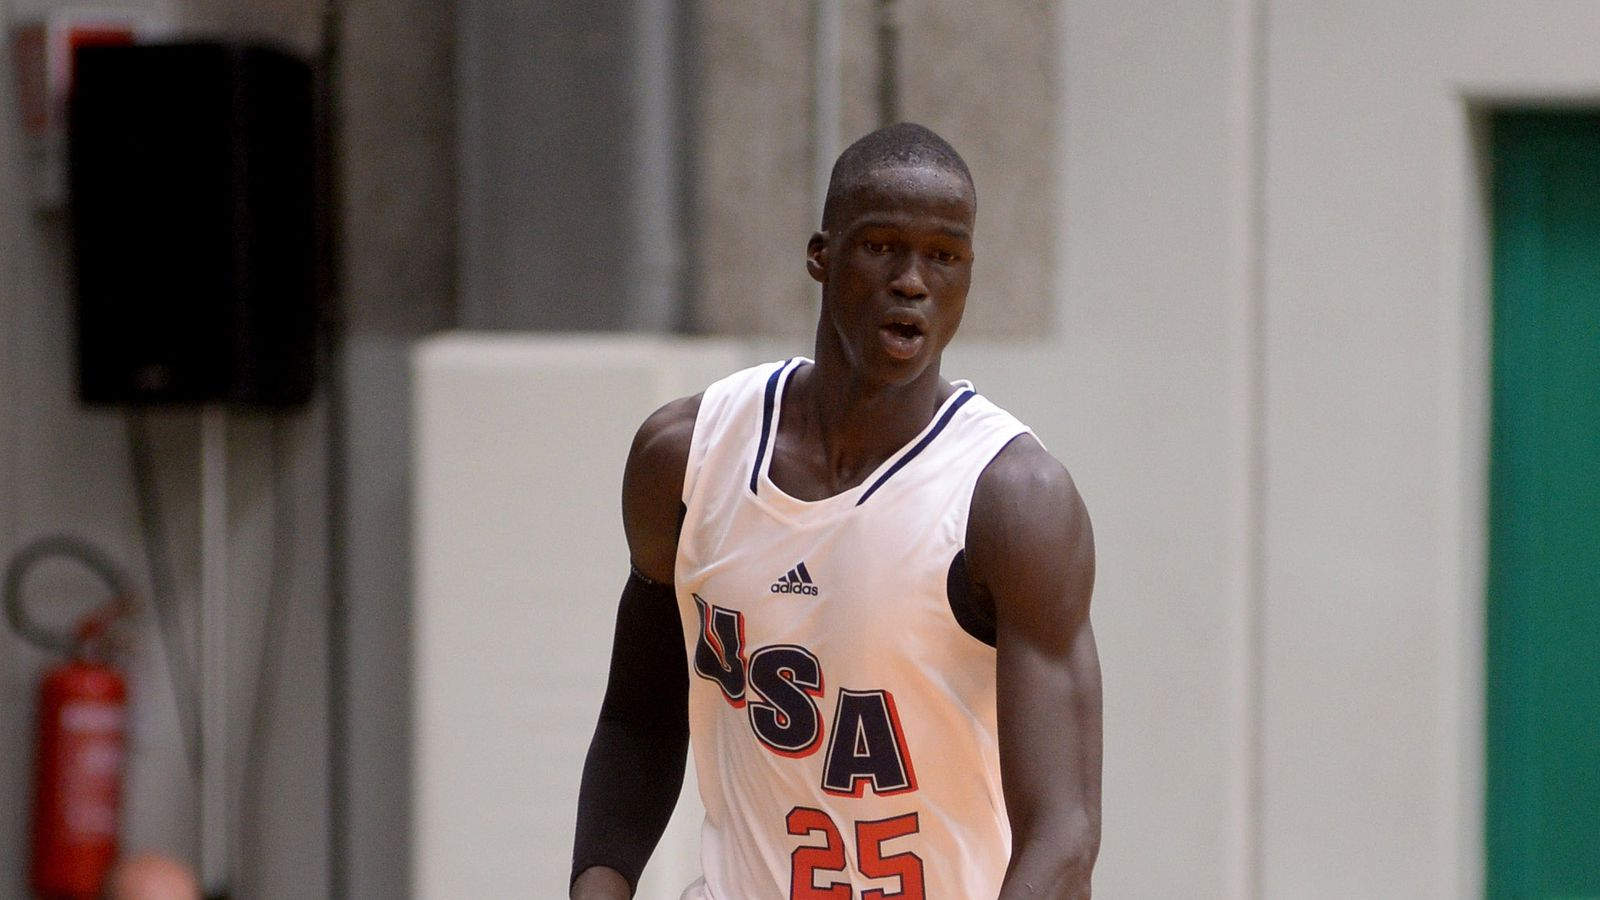 High school phenom thon maker will attempt to enter 2016 for Maker jackson